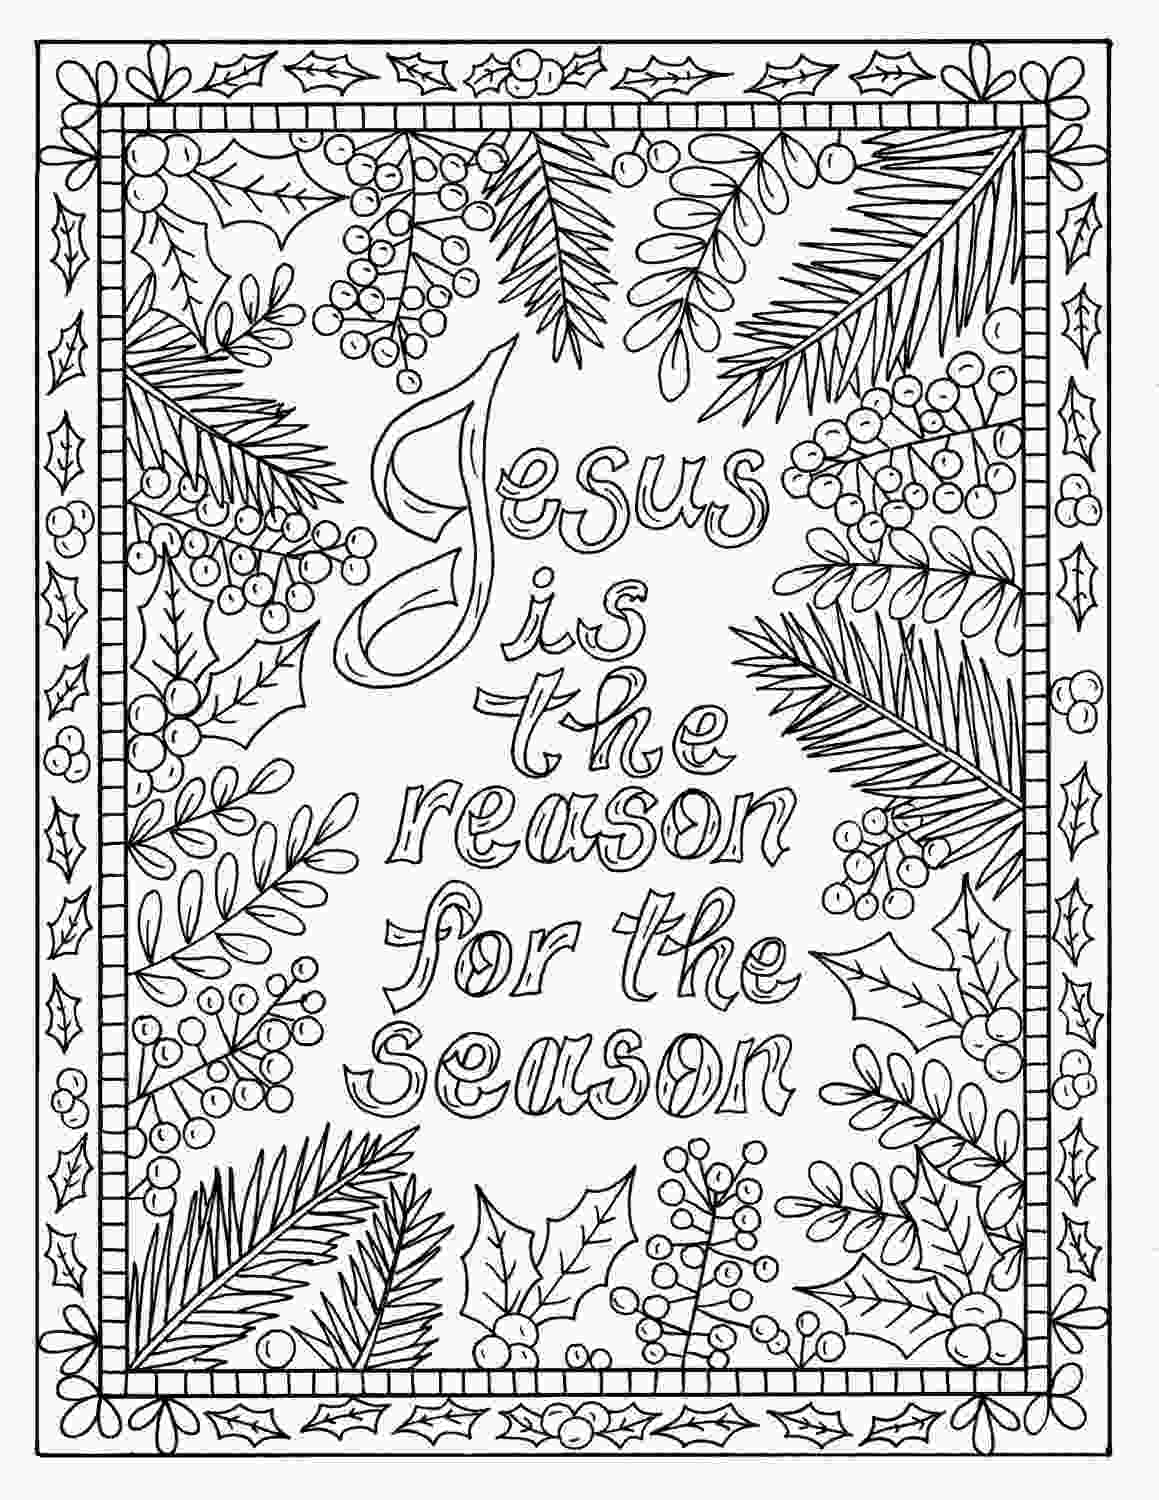 christian christmas coloring sheets 5 christian coloring pages for christmas color book digital